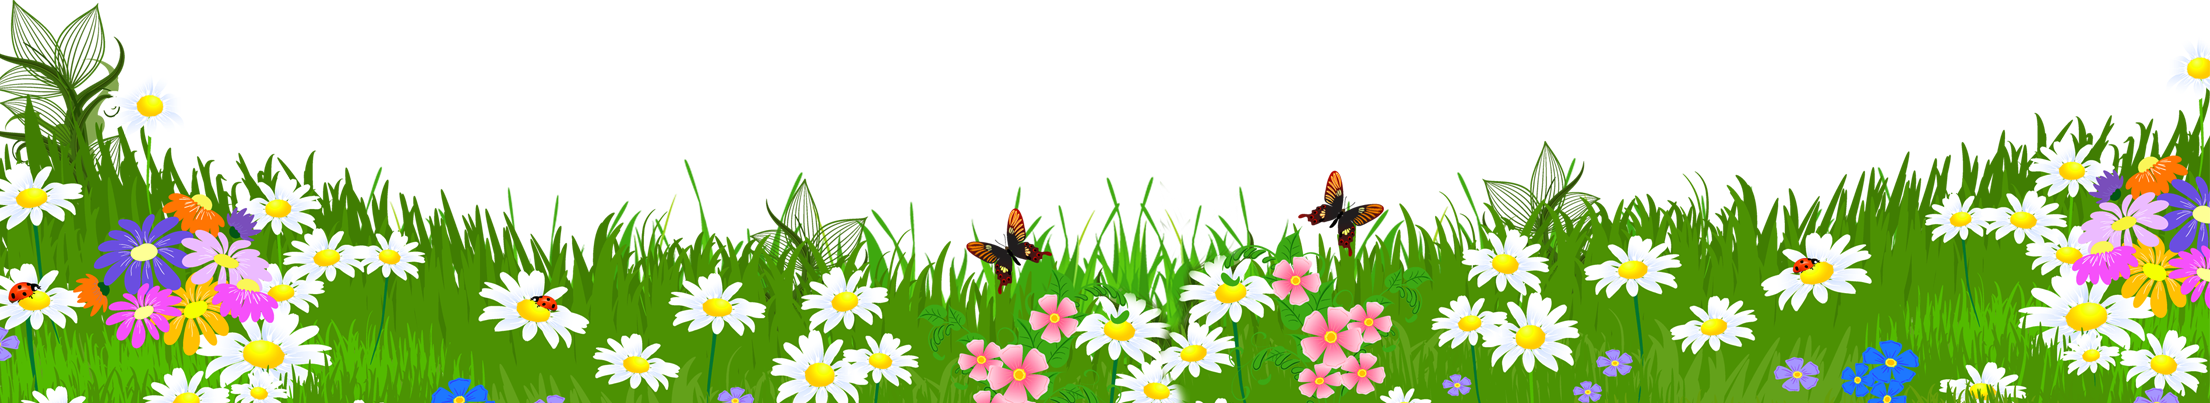 Free Flower Grass Cliparts, Download Free Clip Art, Free.